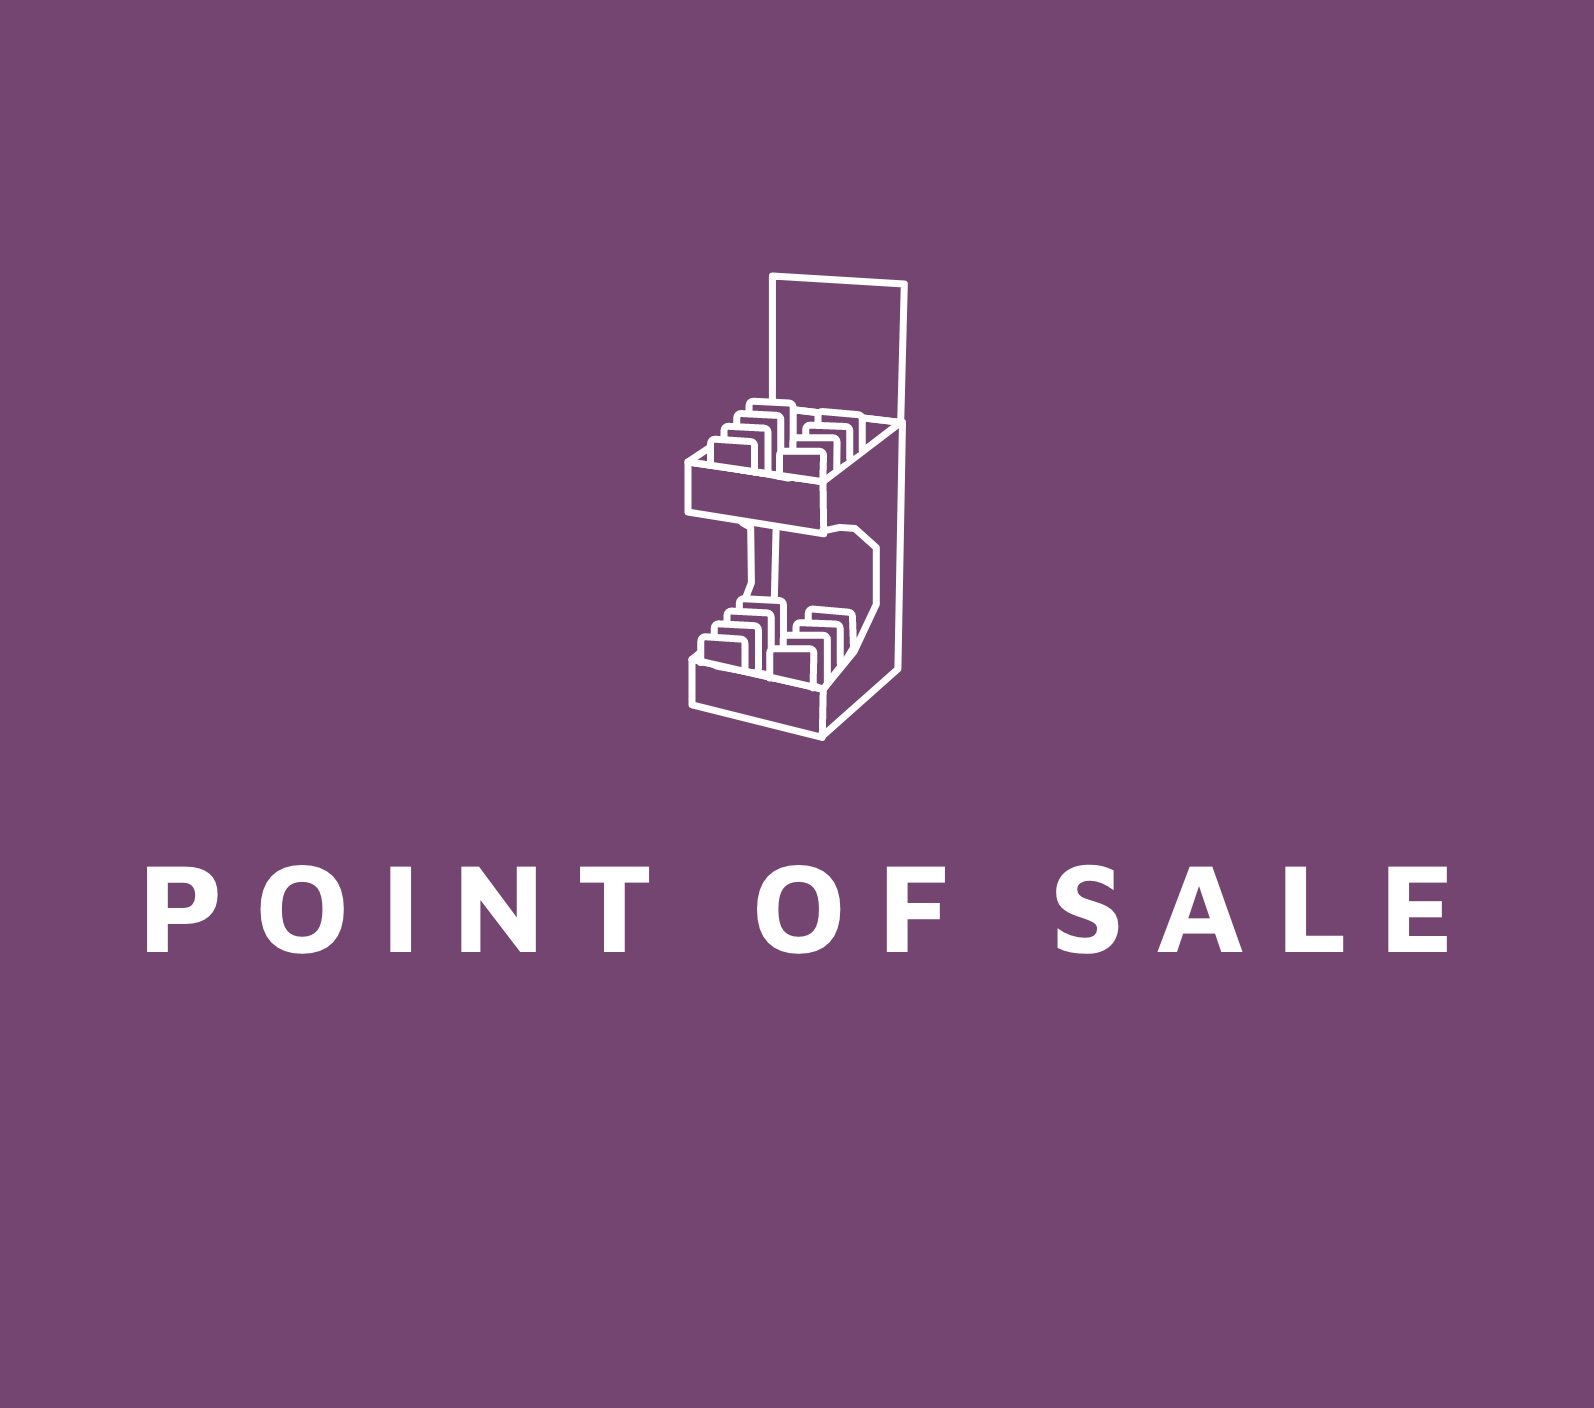 Point of Sale_cb@2x